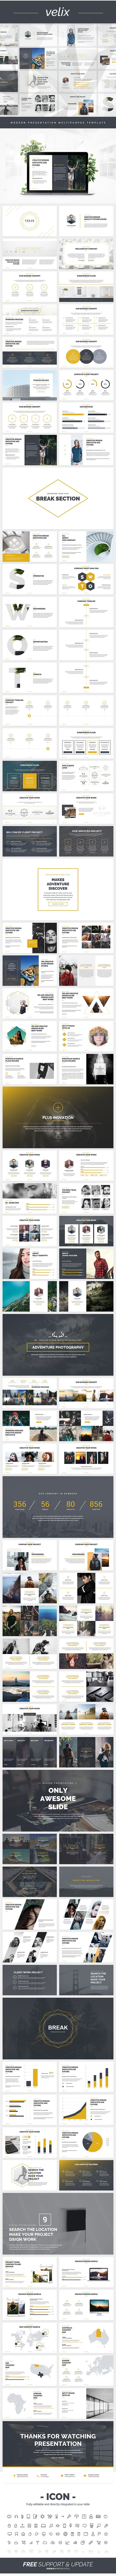 Velix Powerpoint Template